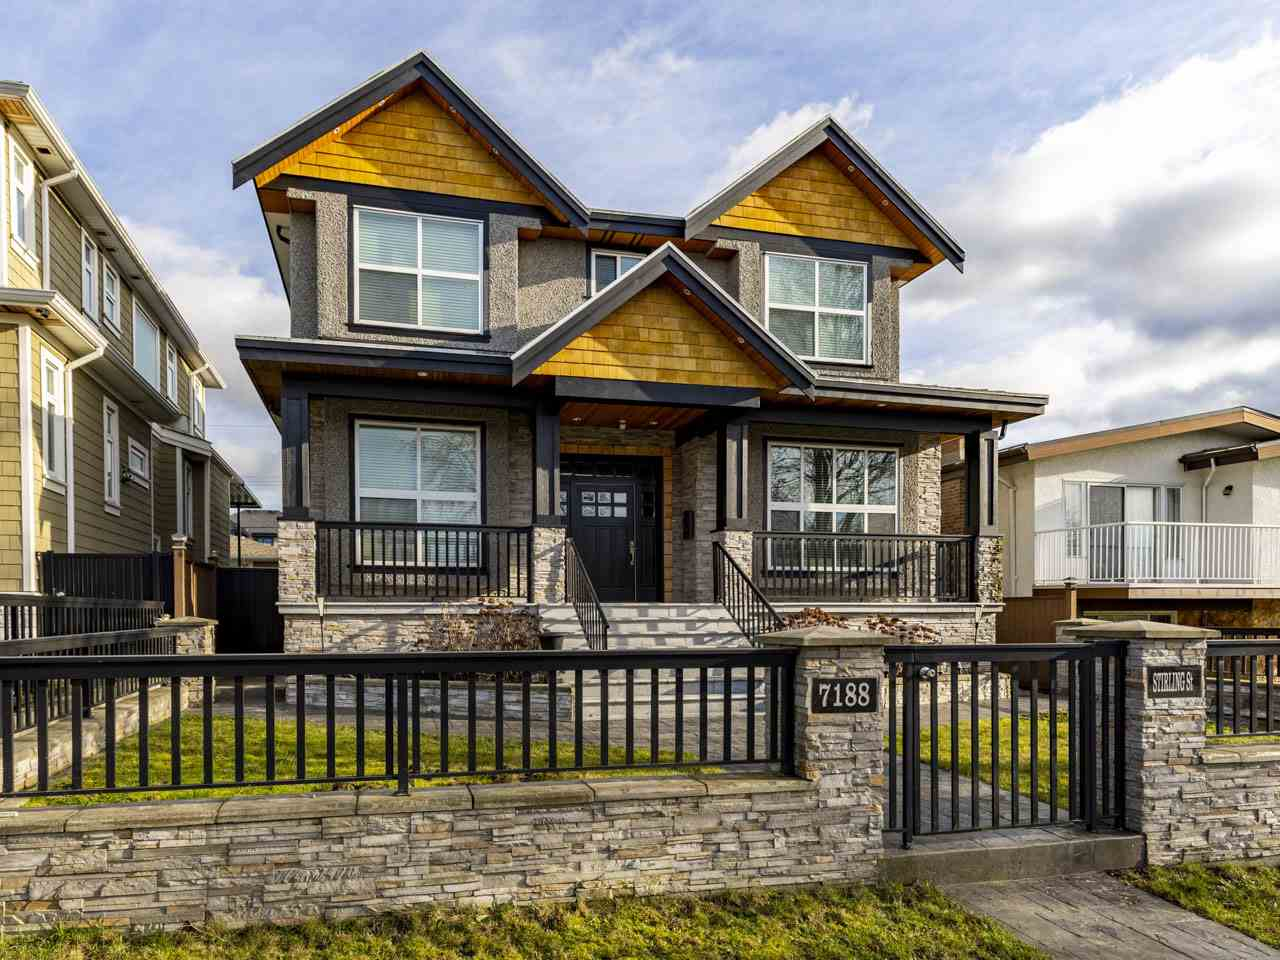 7188 STIRLING STREET - MLS® # R2429860